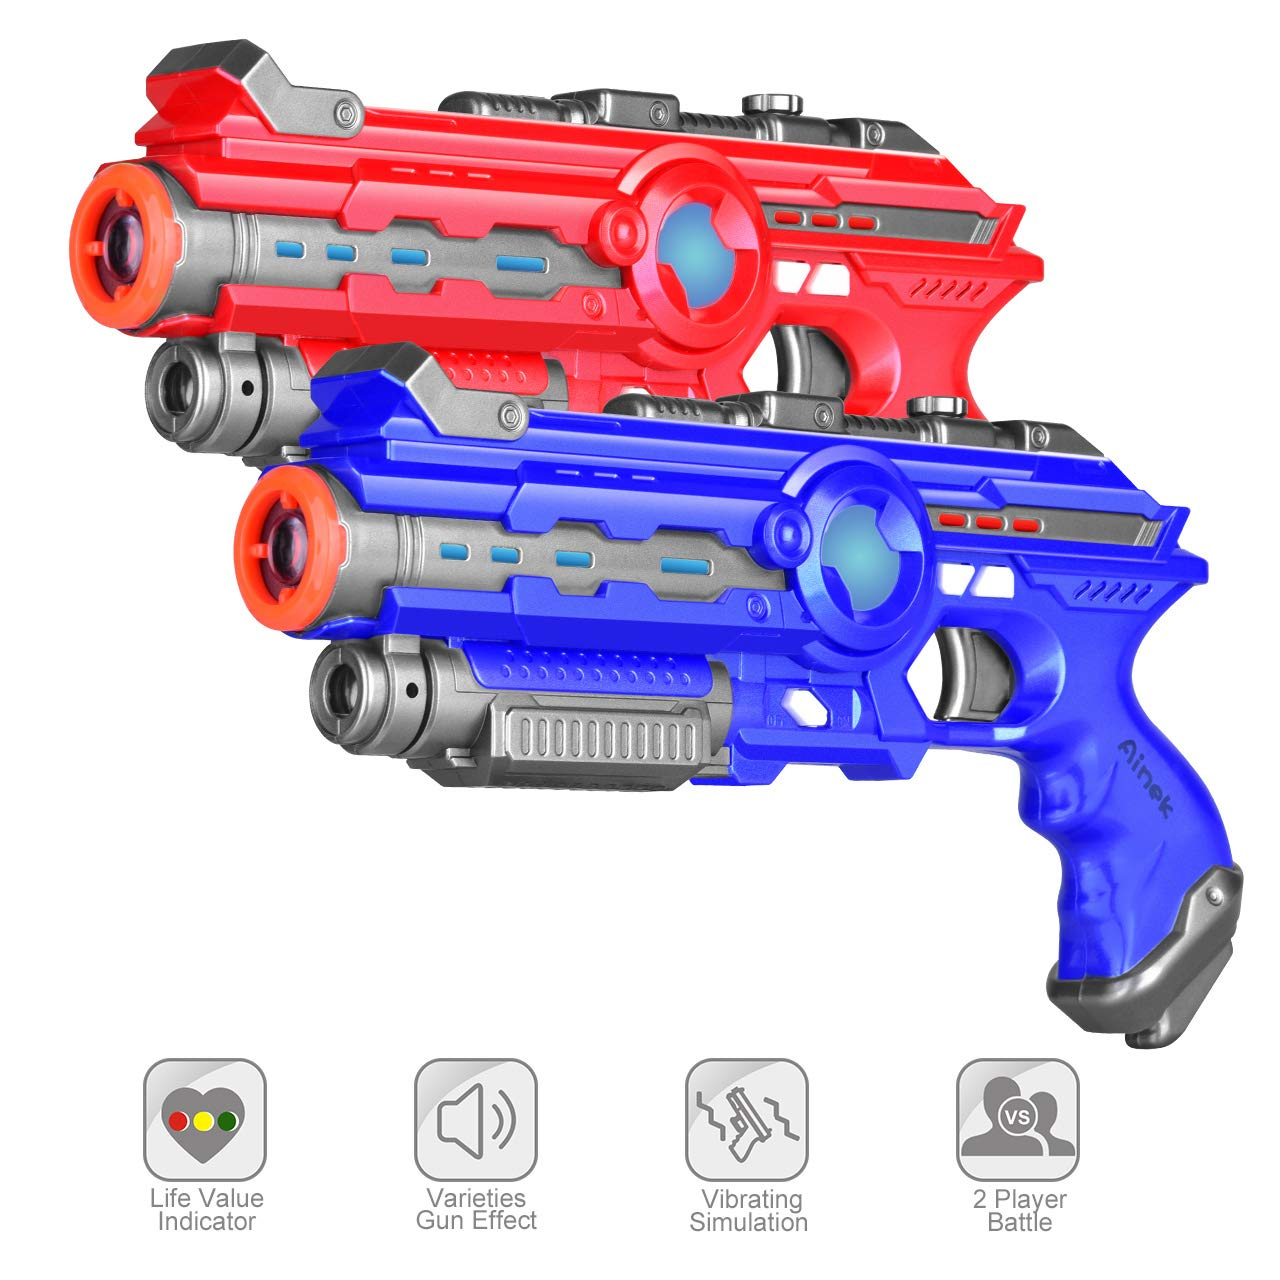 AINEK Infrared Laser Tag Blasters - 4 Gun Setting Infrared Laser Tag for Kids and Adults - Outdoor & Indoor Infrared Laser Tag Action Game 2 Packed Birthday & Children's Day Gift - Infrared 0.9mW